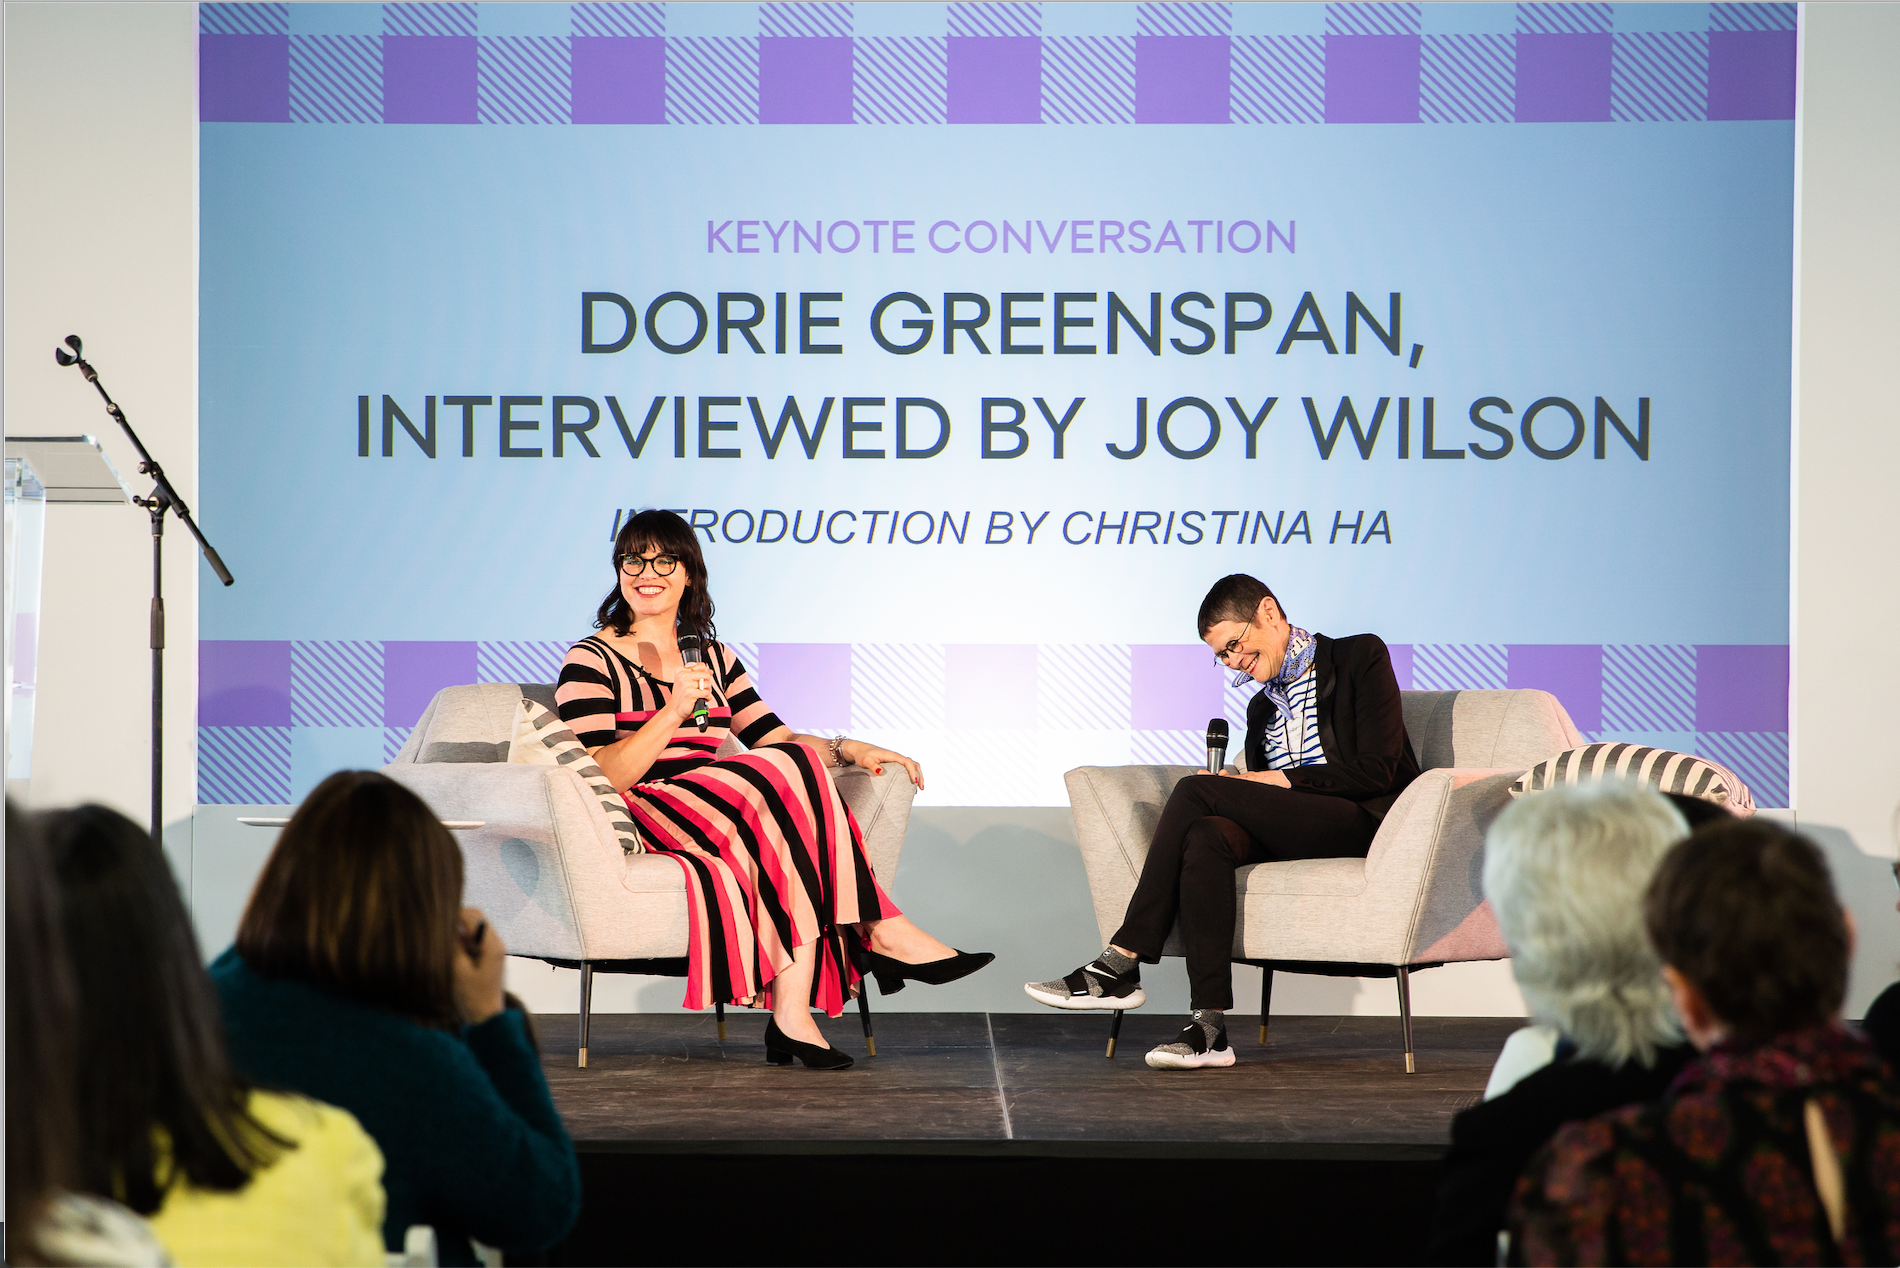 Joy Wilson and Dorie Greenspan